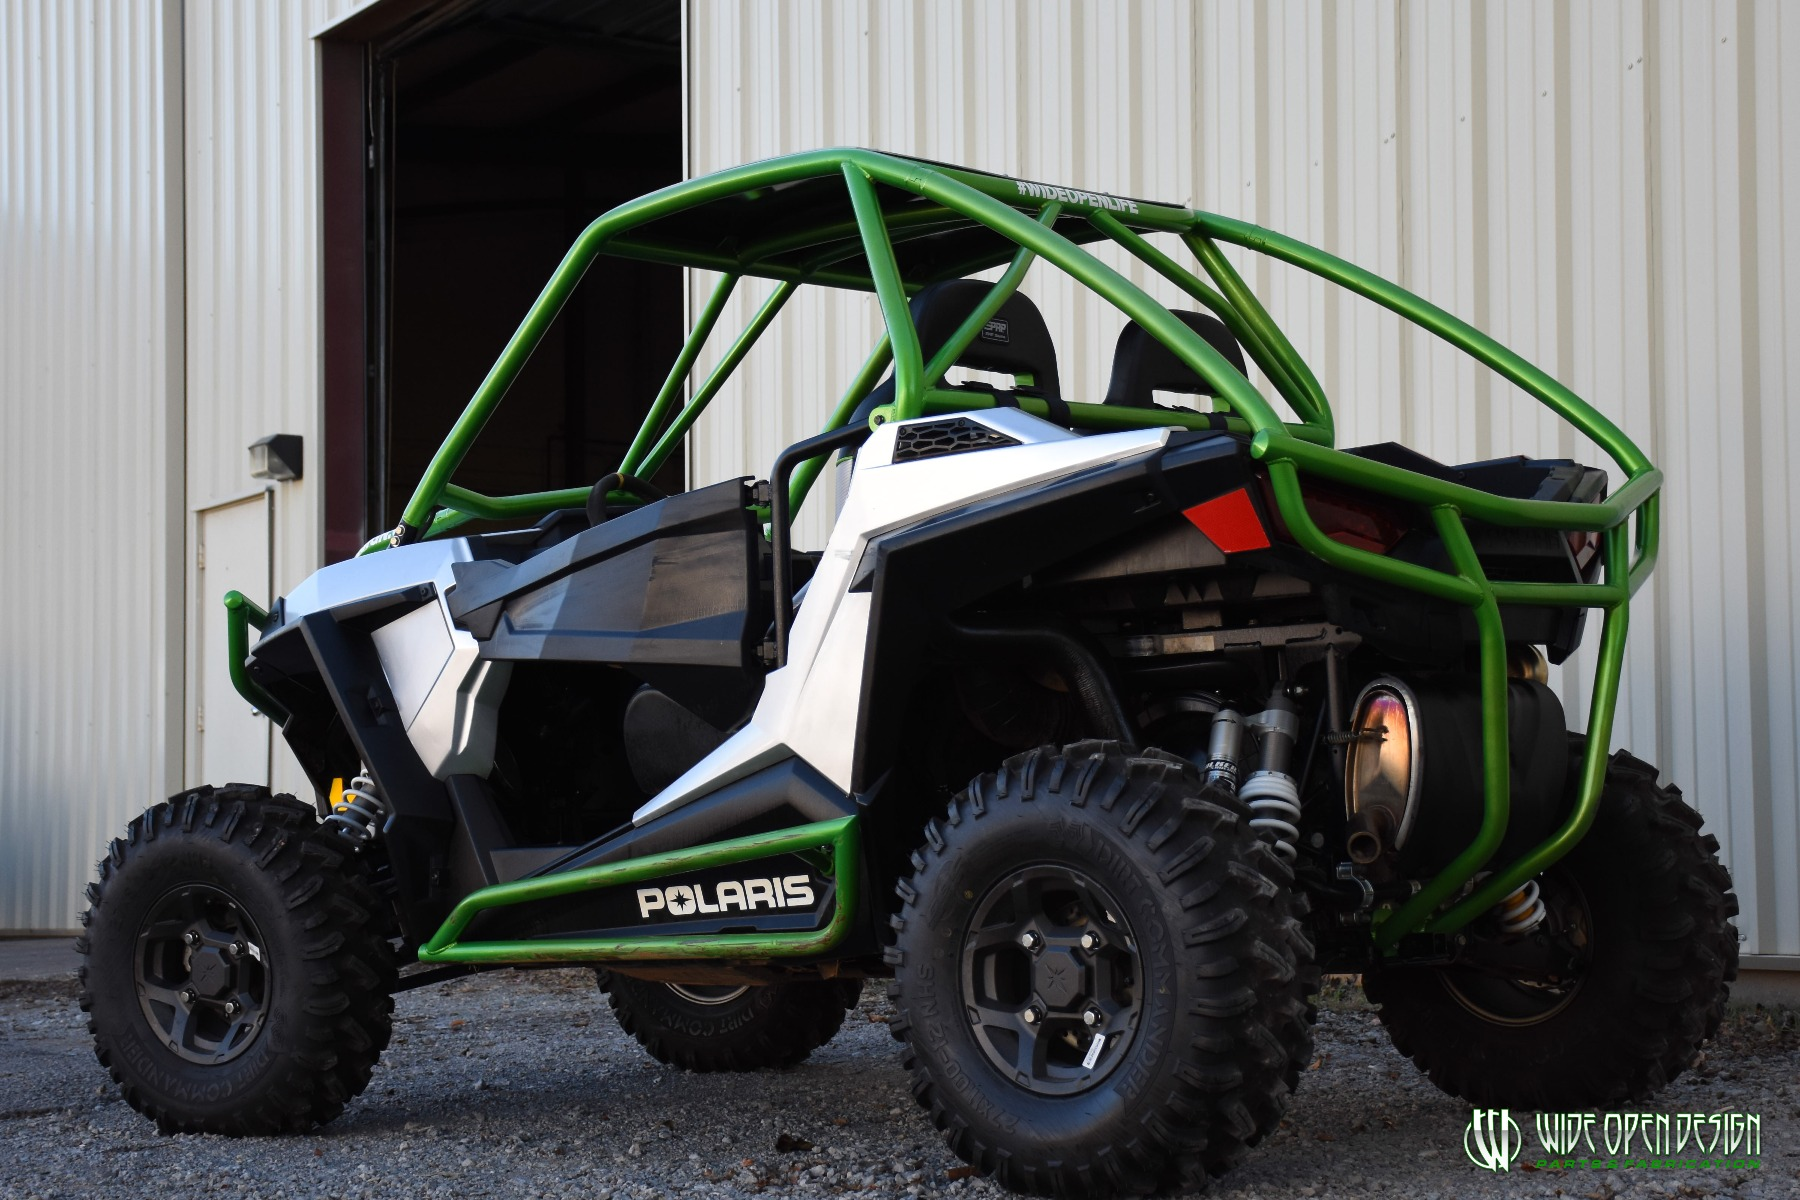 Jason's 1000s RZR with Wide Open Design Rolled Roof Cage, Front Bumper with Tie In, and Rocker Guards 22